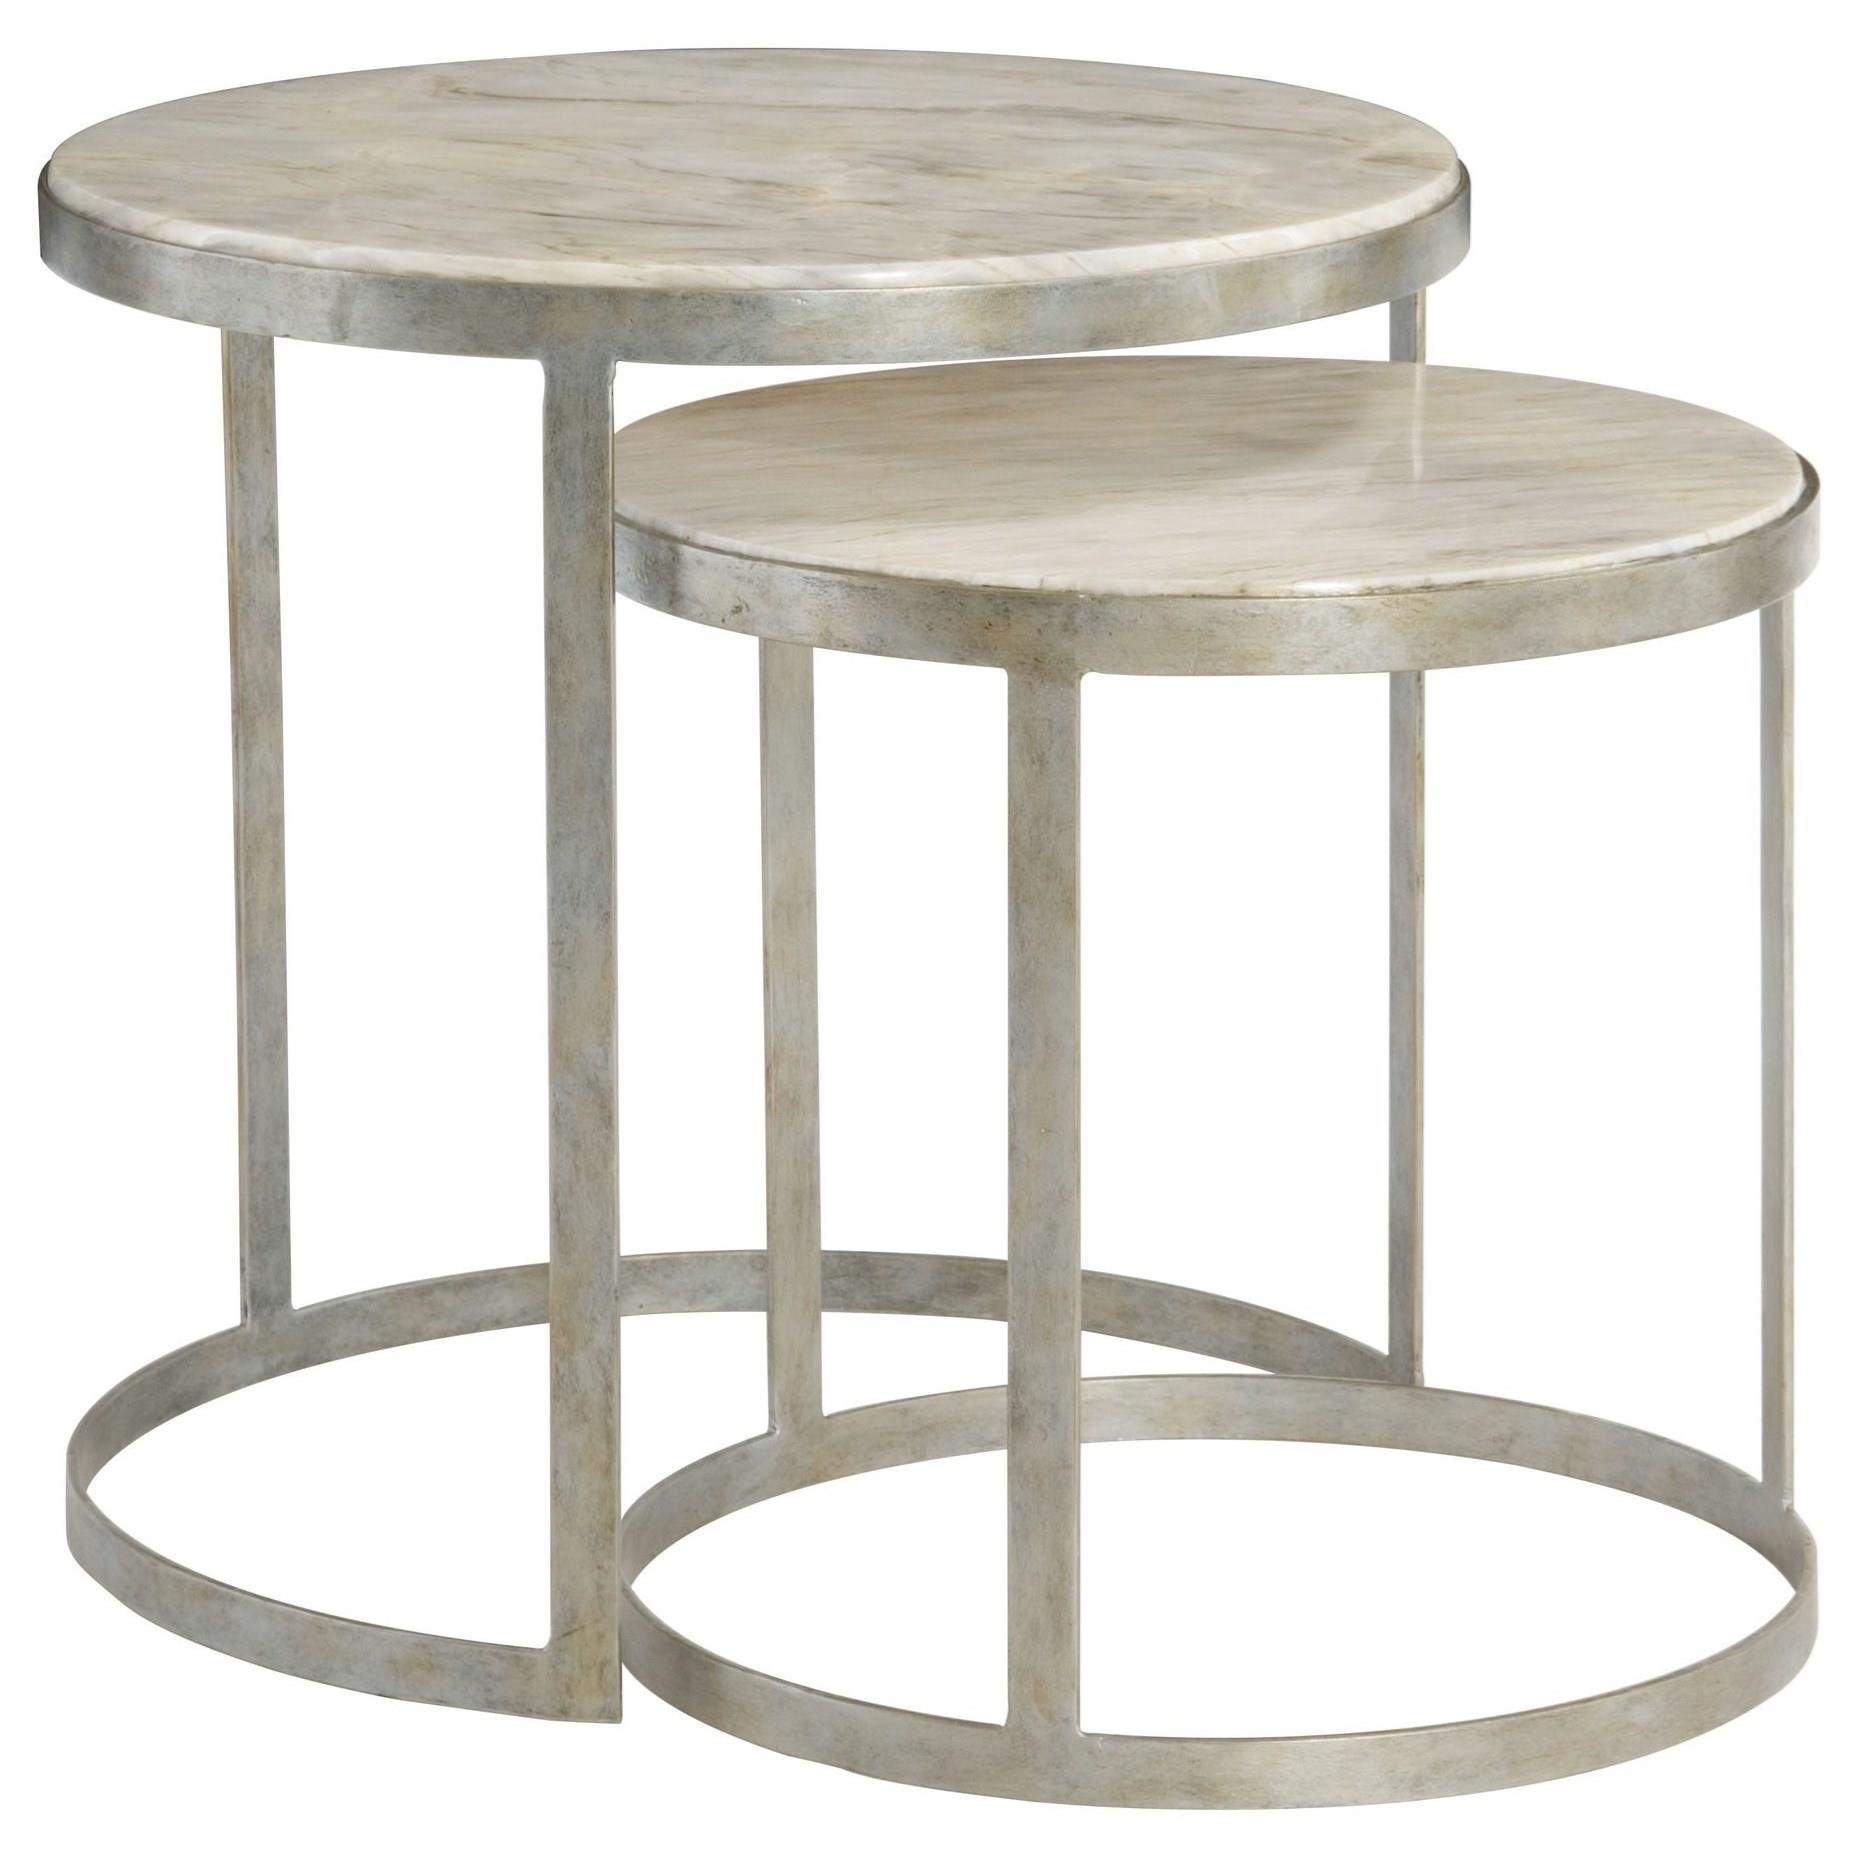 Interiors - Accents Tiffin Nesting Tables by Bernhardt at Baer's Furniture